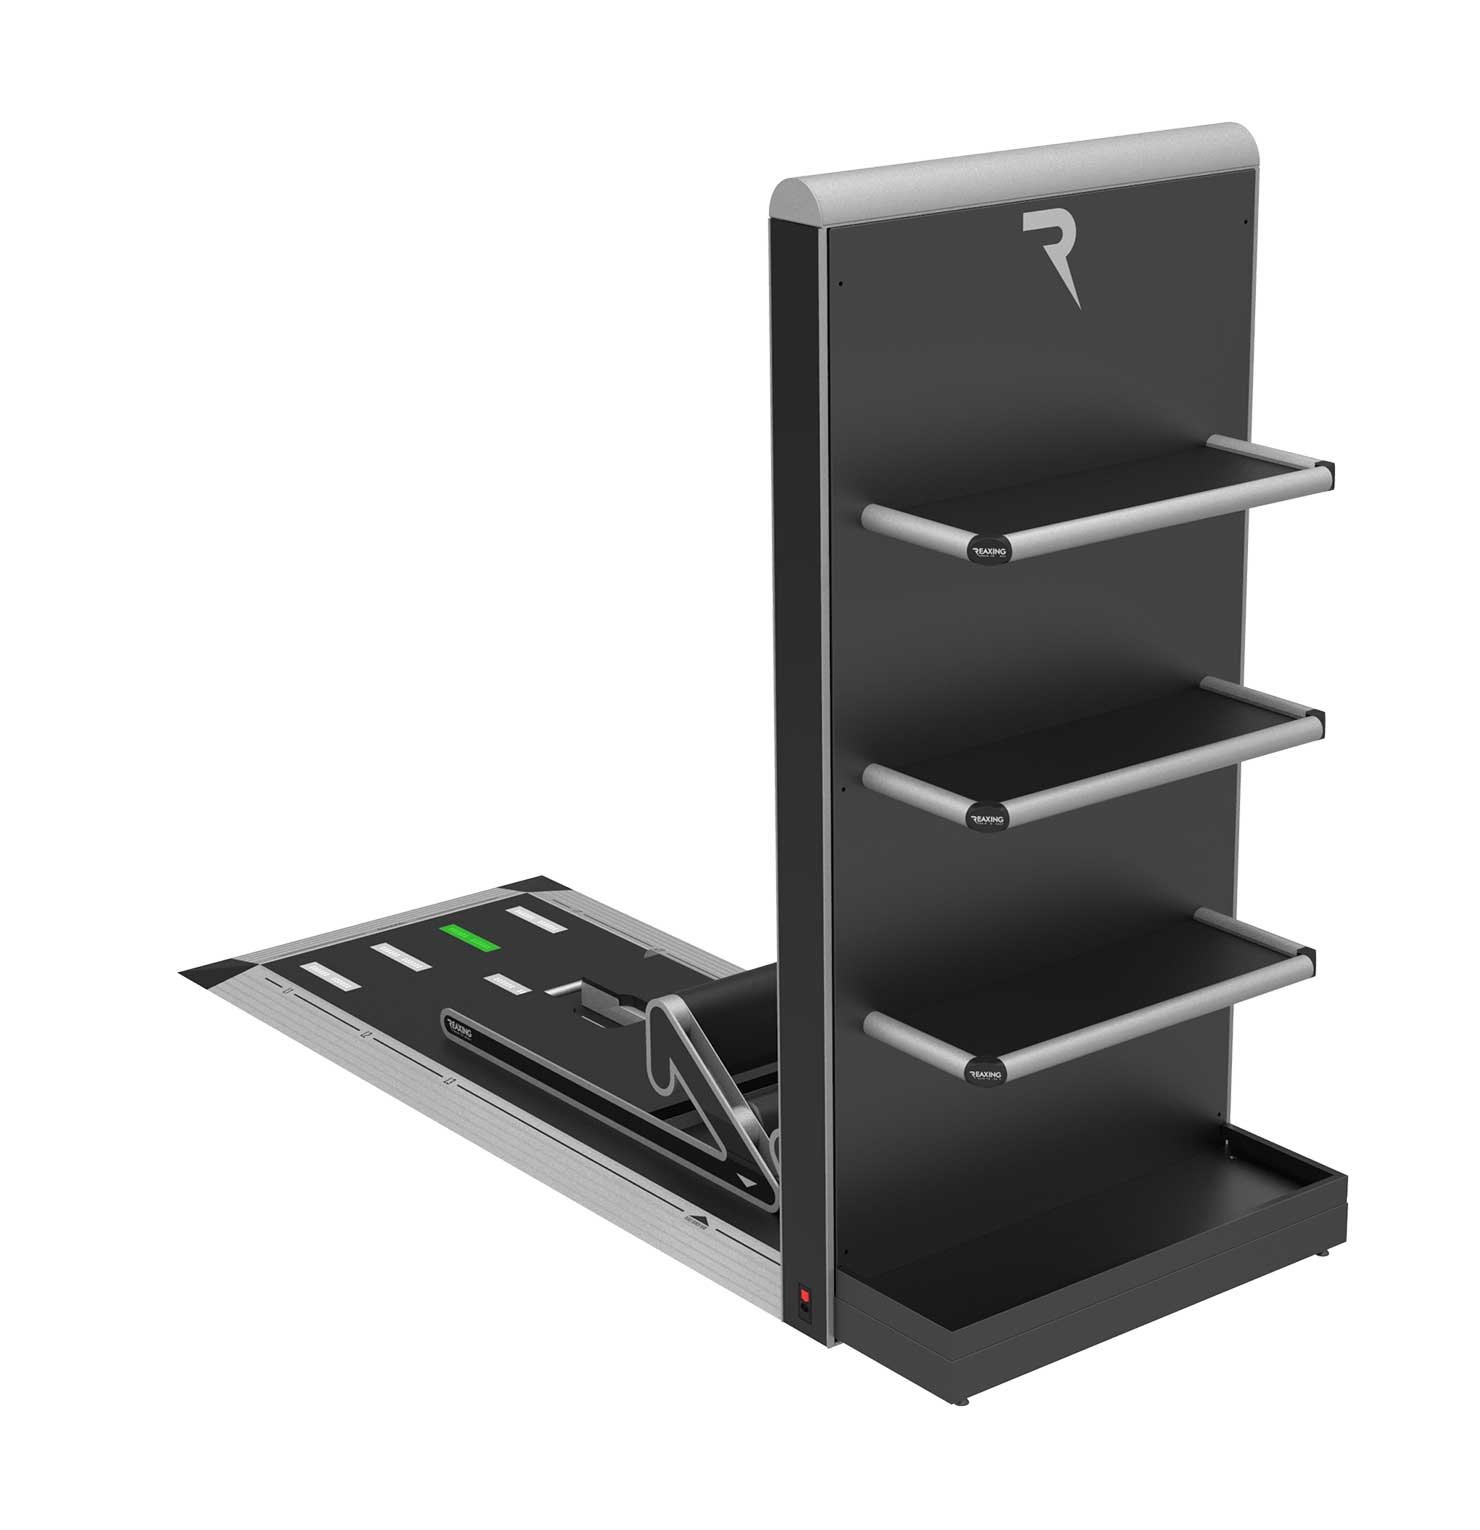 rx1648-reax-compact-wall-and-floor-self-standing-b-side-1